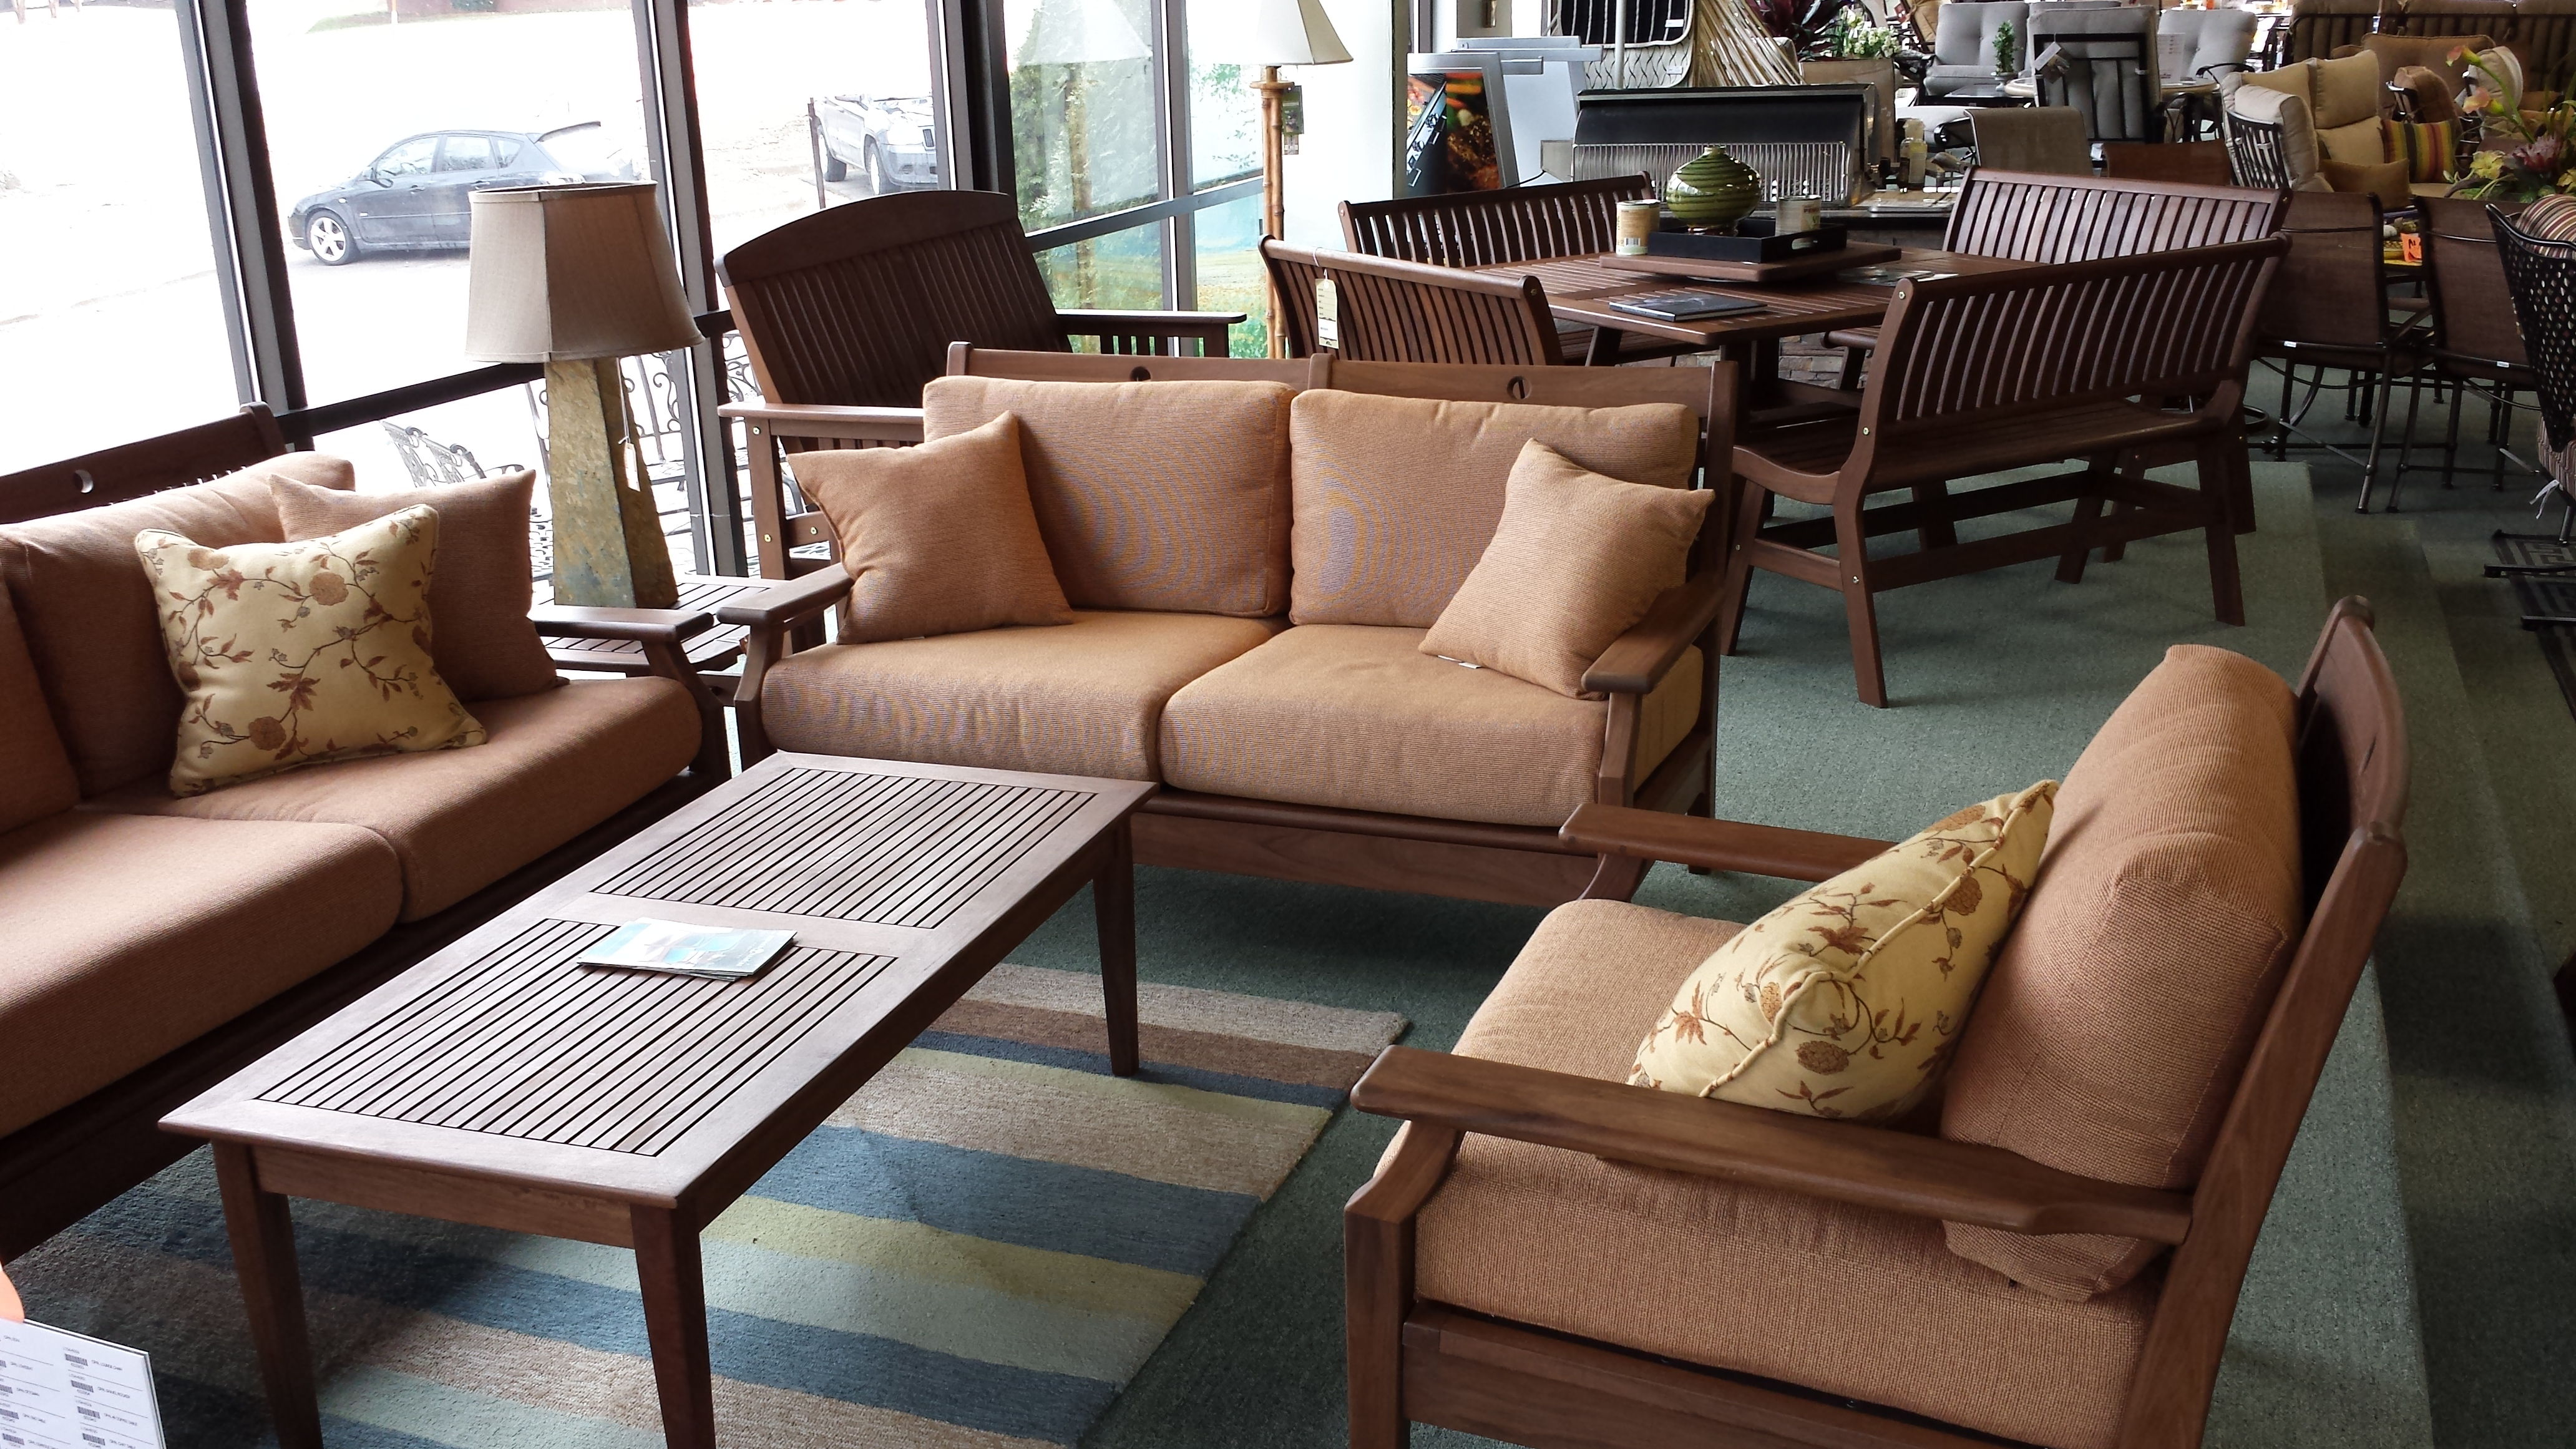 The Fire House Casual Living Store 5301 Capital Blvd, #J ... on Fireplace Casual Living id=22697